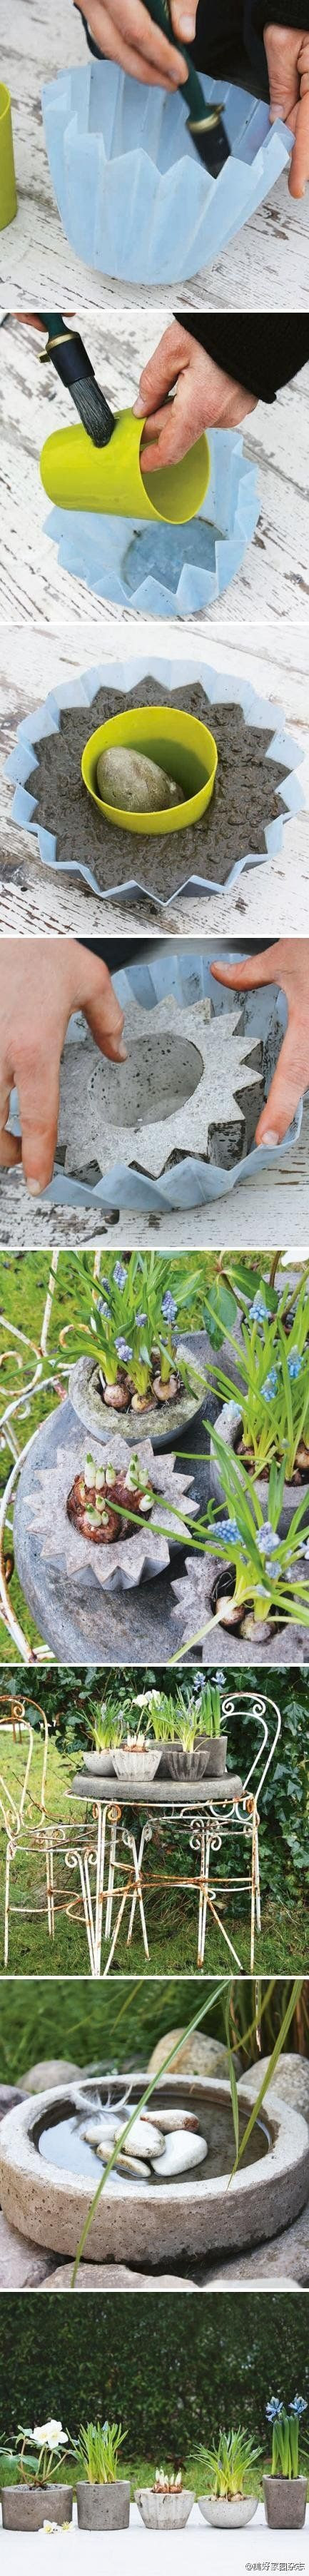 Concrete casting by joybx: something to try this summer with printed forms/molds ♥Follow us♥